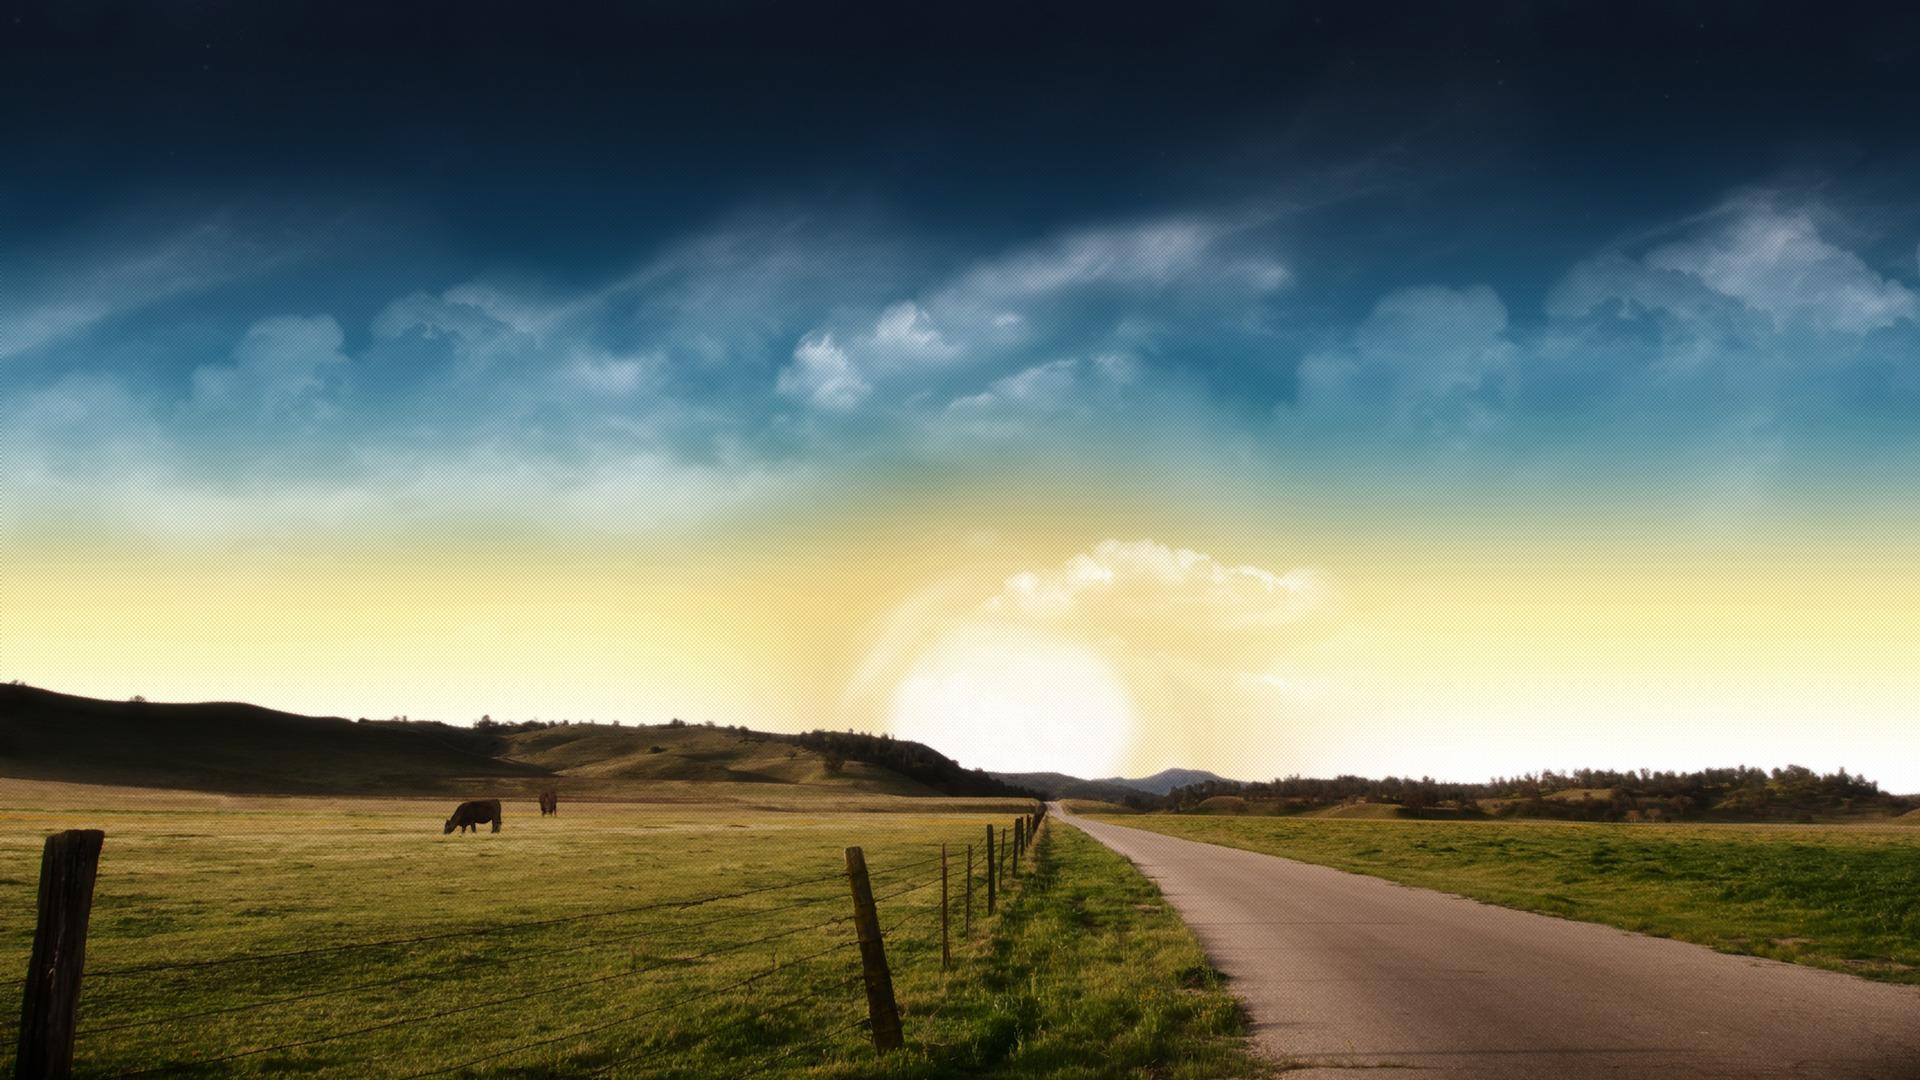 Country Road Wallpaper For Android Wallpaper WallpaperLepi 1920x1080